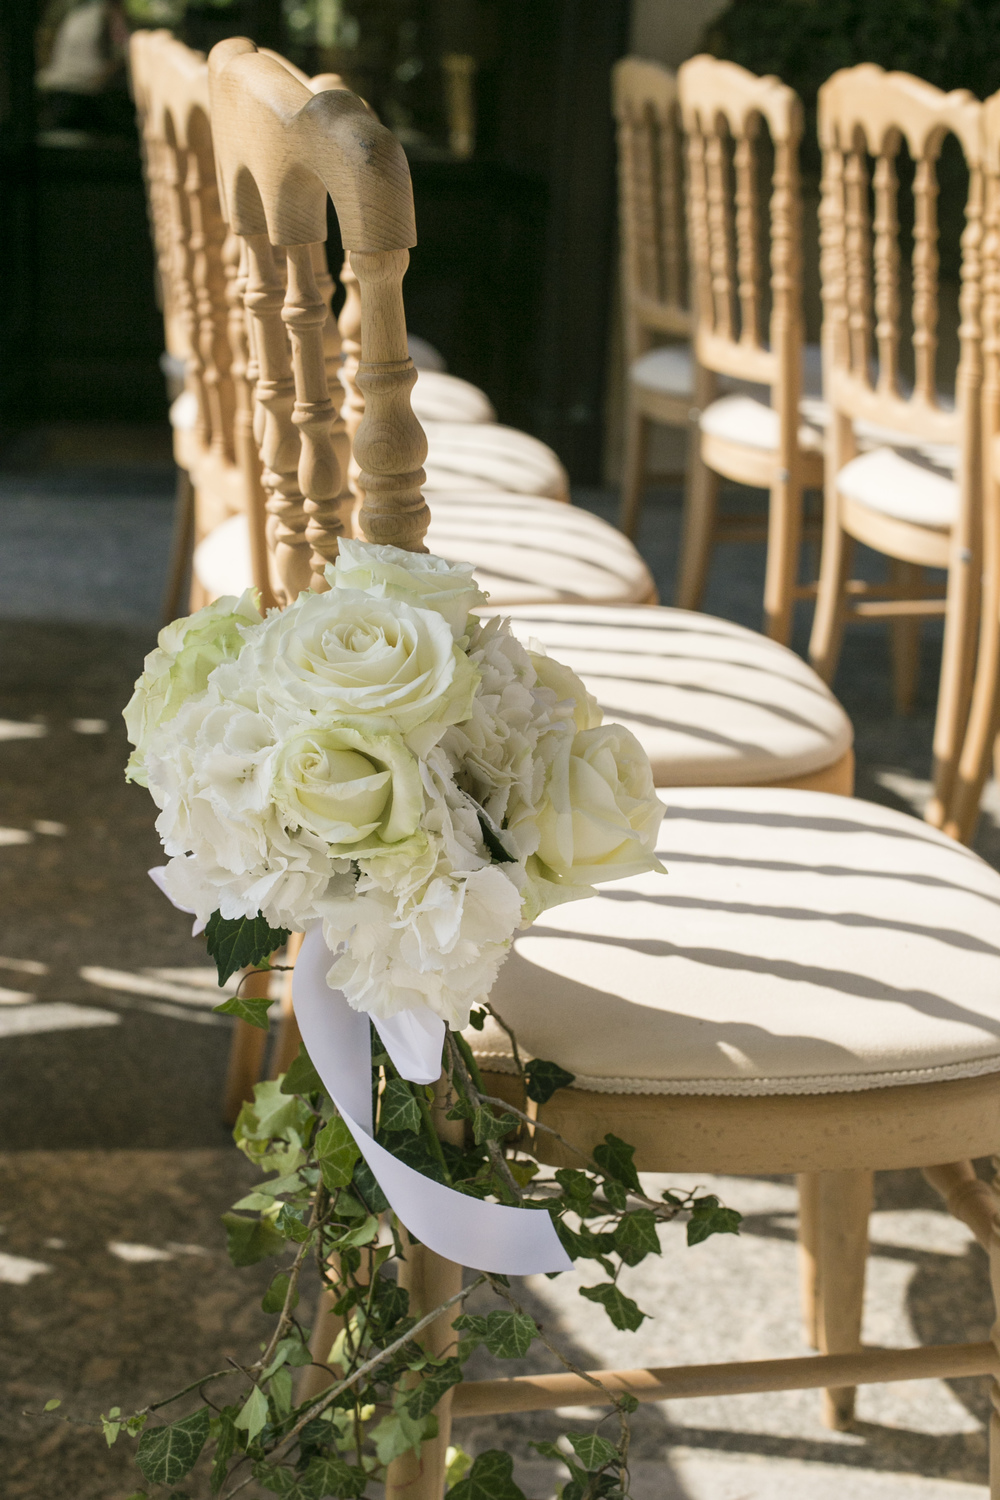 Ceci_New_York_Wedding_Lake_Como_Italy_Luxury_Style_Real_Bride_35.jpg